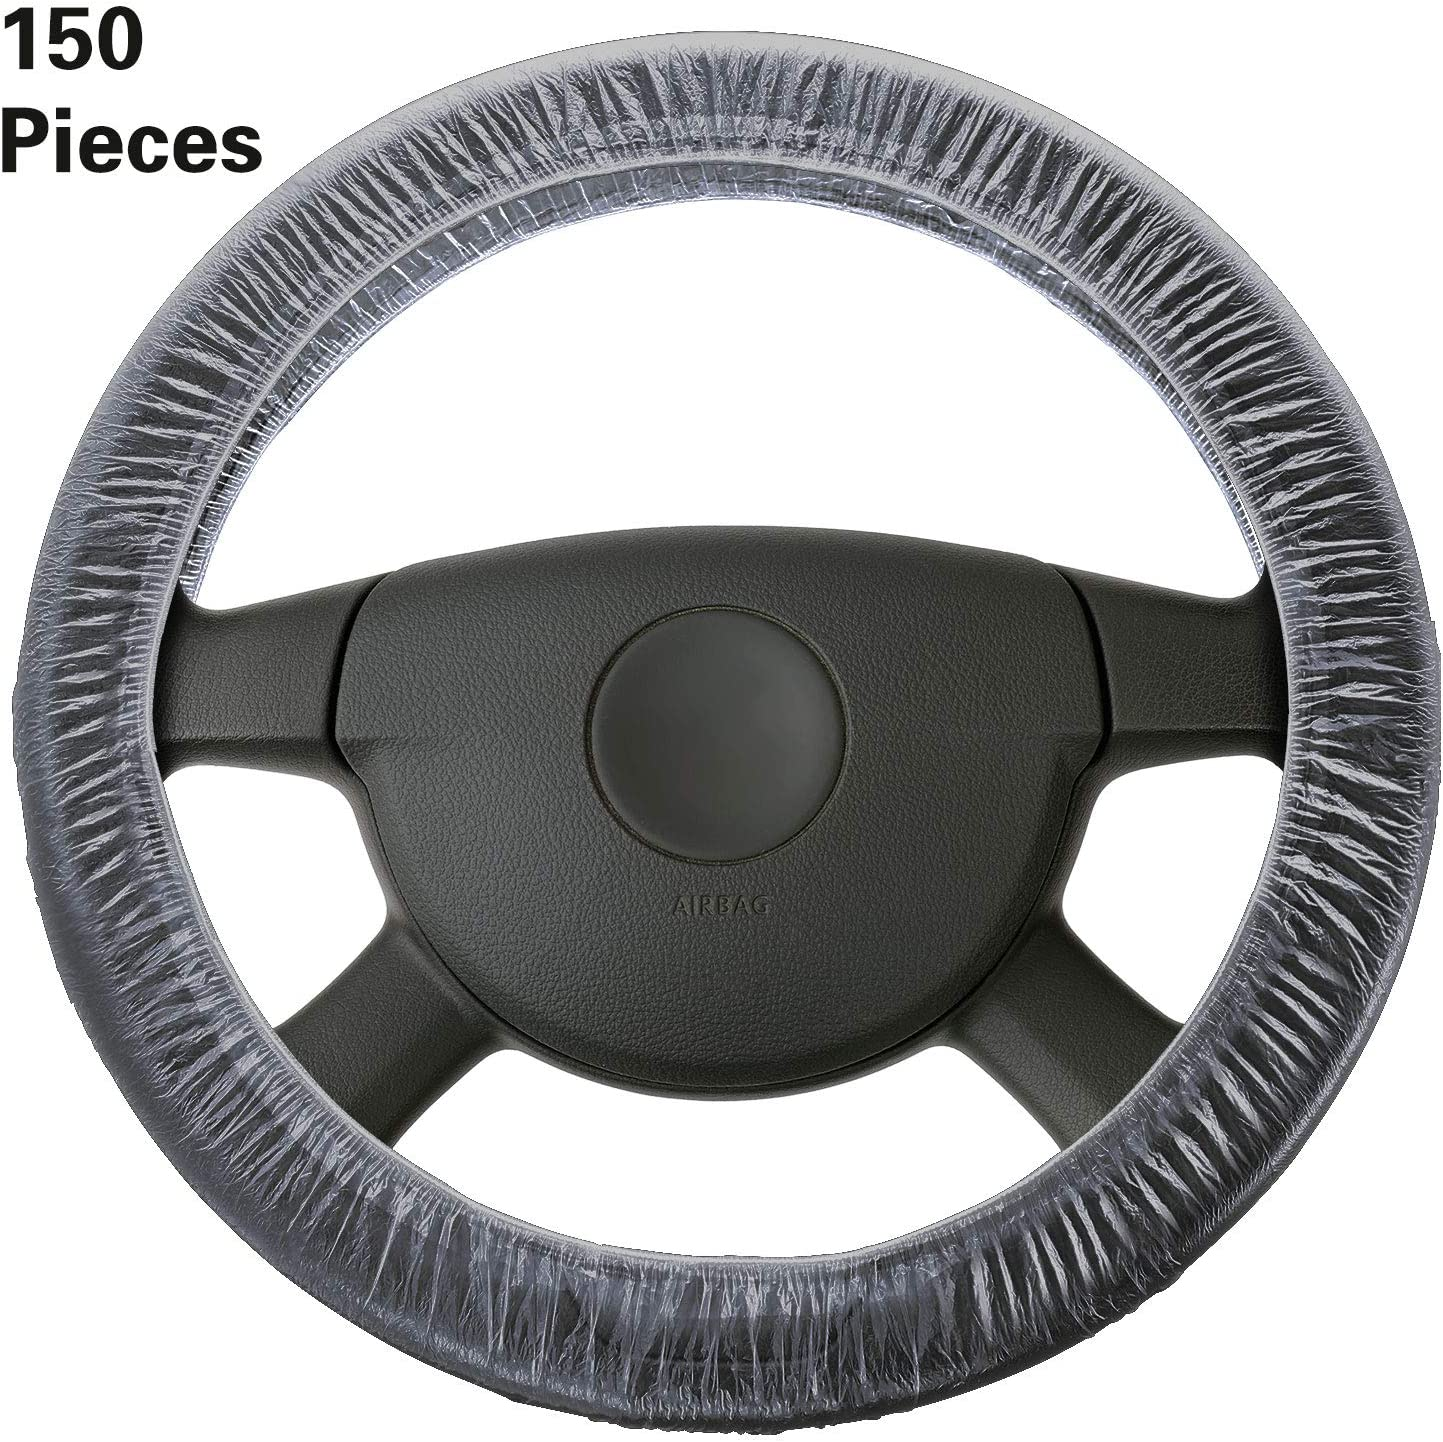 150 Pieces Universal Disposable Steering Wheel Cover Plastic Clear Car Steering Wheel Covers with Elastic Trims for Auto Car Supplies